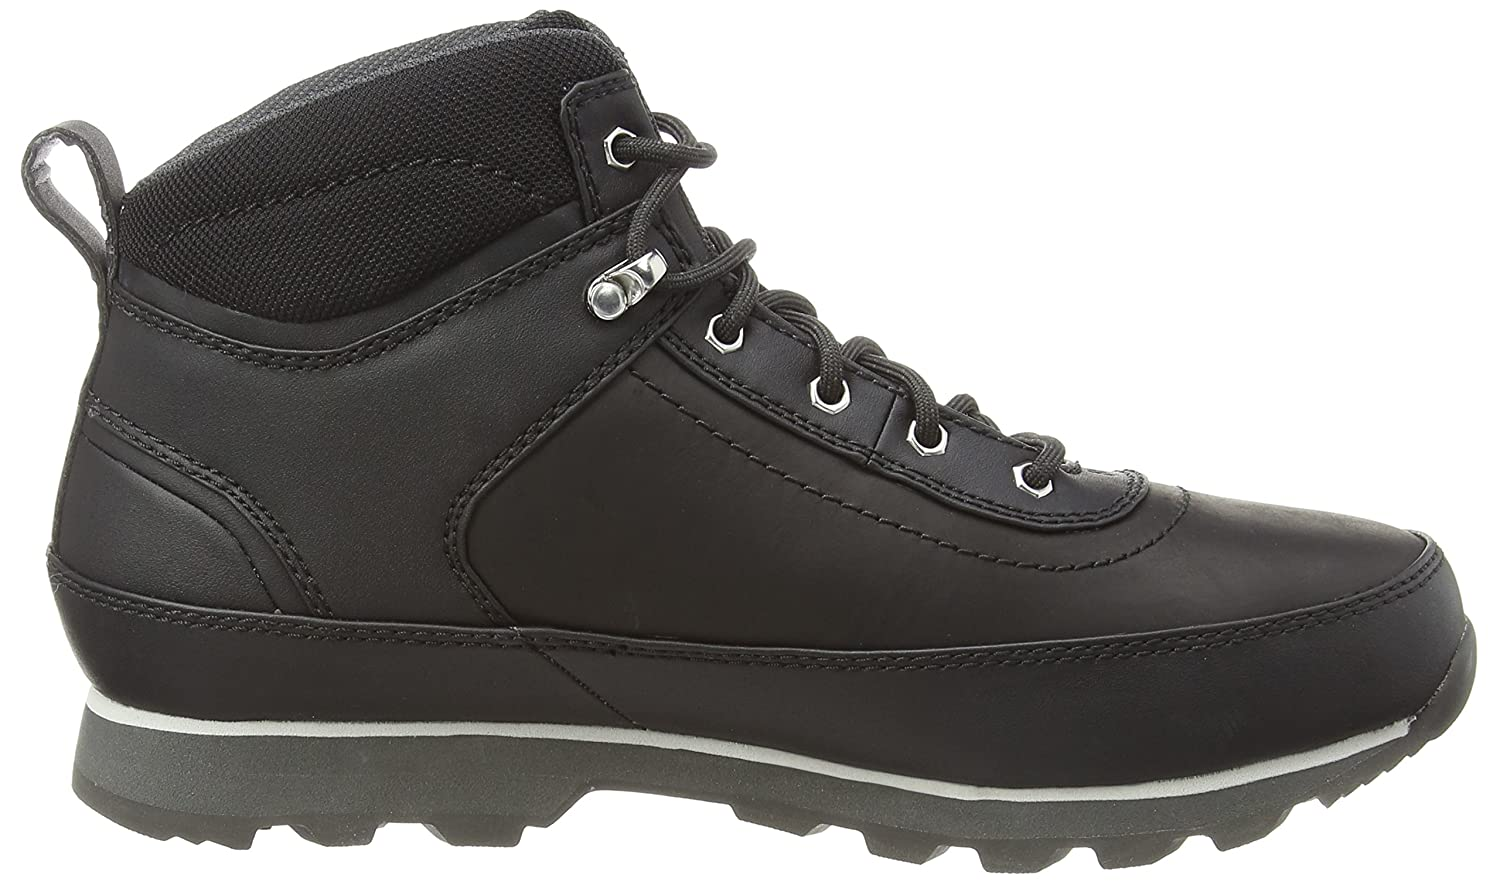 Helly Hansen Calgary, Herren Grey Kurzschaft Stiefel Schwarz (Jet Black/Ebony/Light Grey Herren 991) 254003